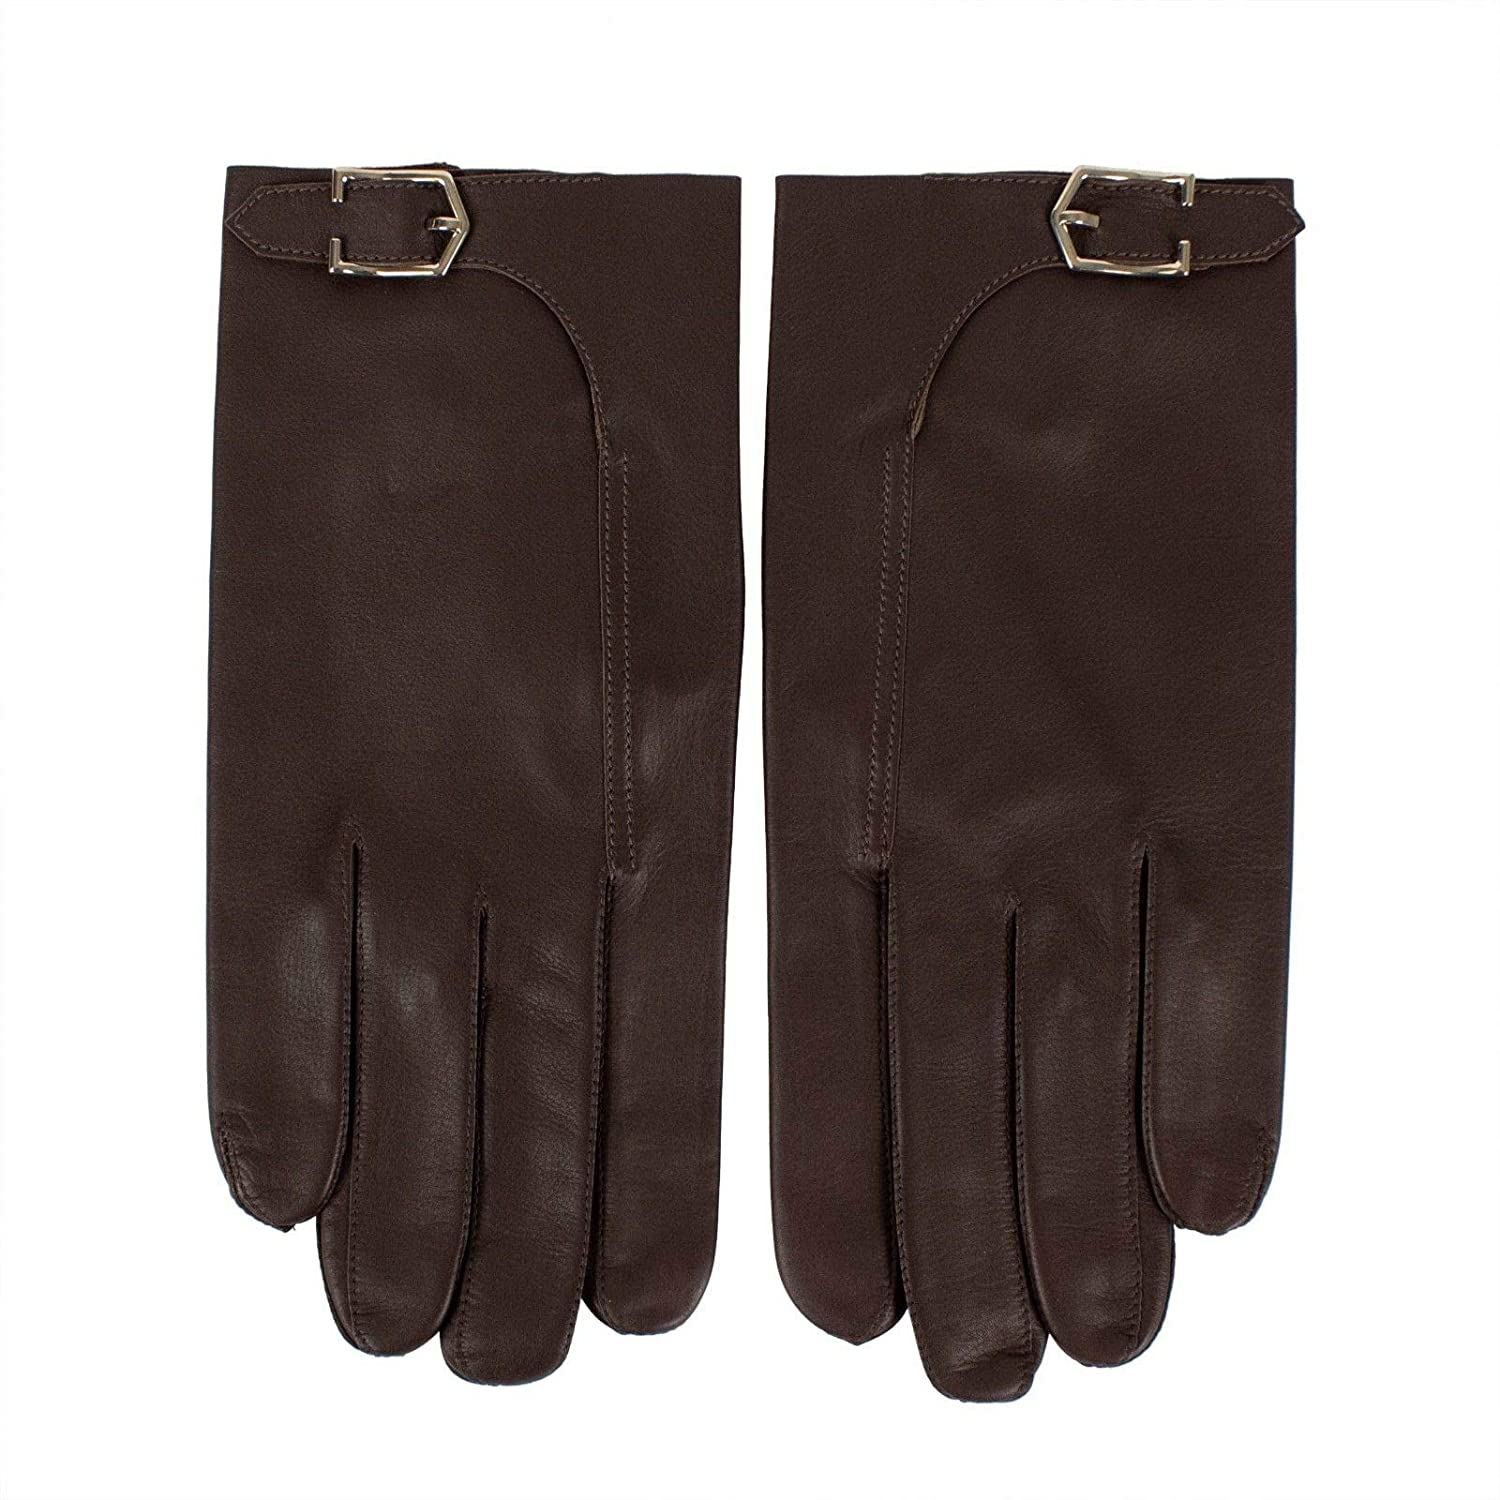 John Lobb MenS Calfskin Leather With Buckle Gloves//Large 9 Brown